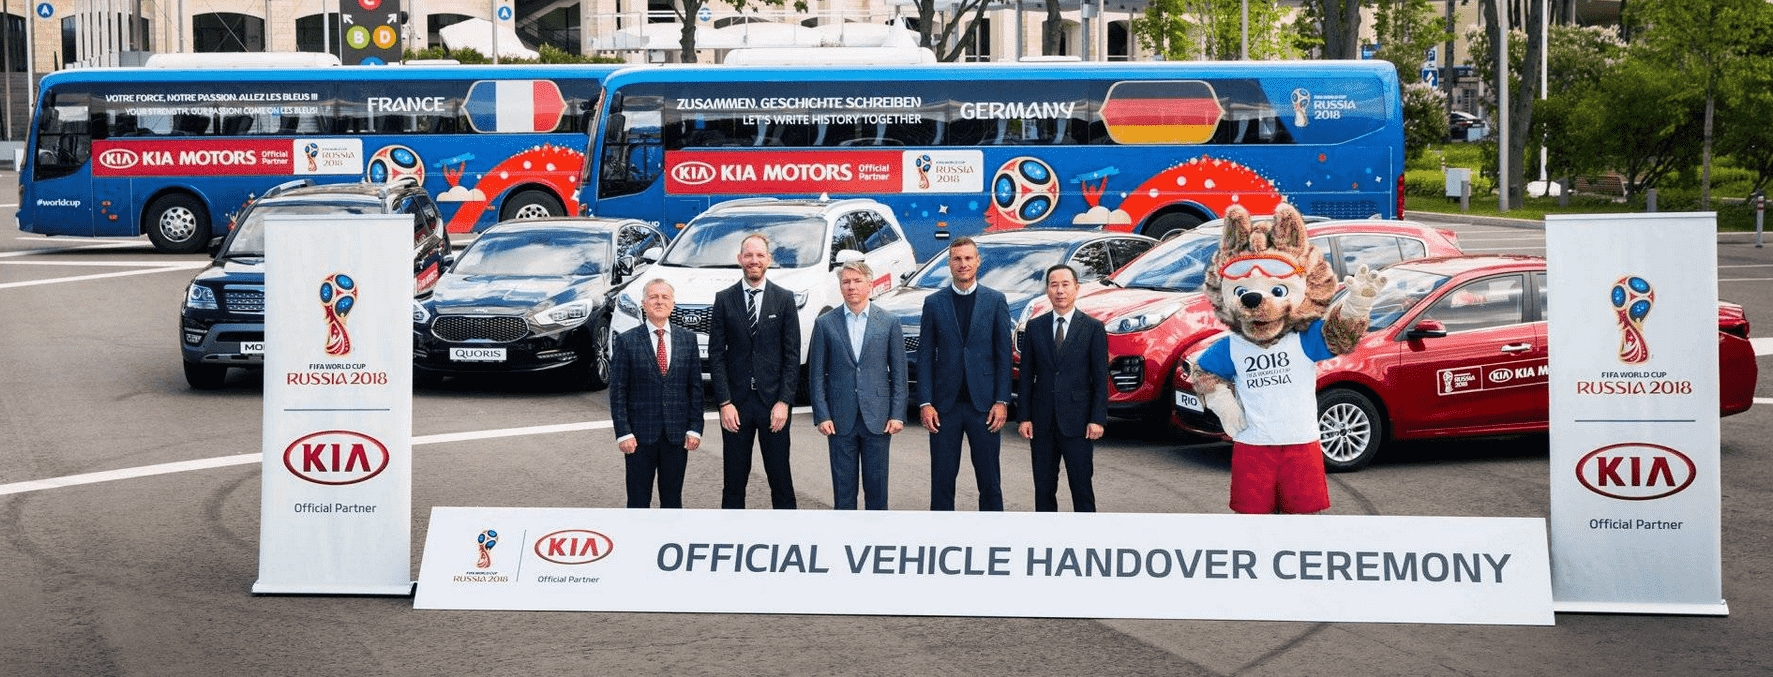 Why the FIFA World Cup Russia 2018 has lots in common with fleet management_2